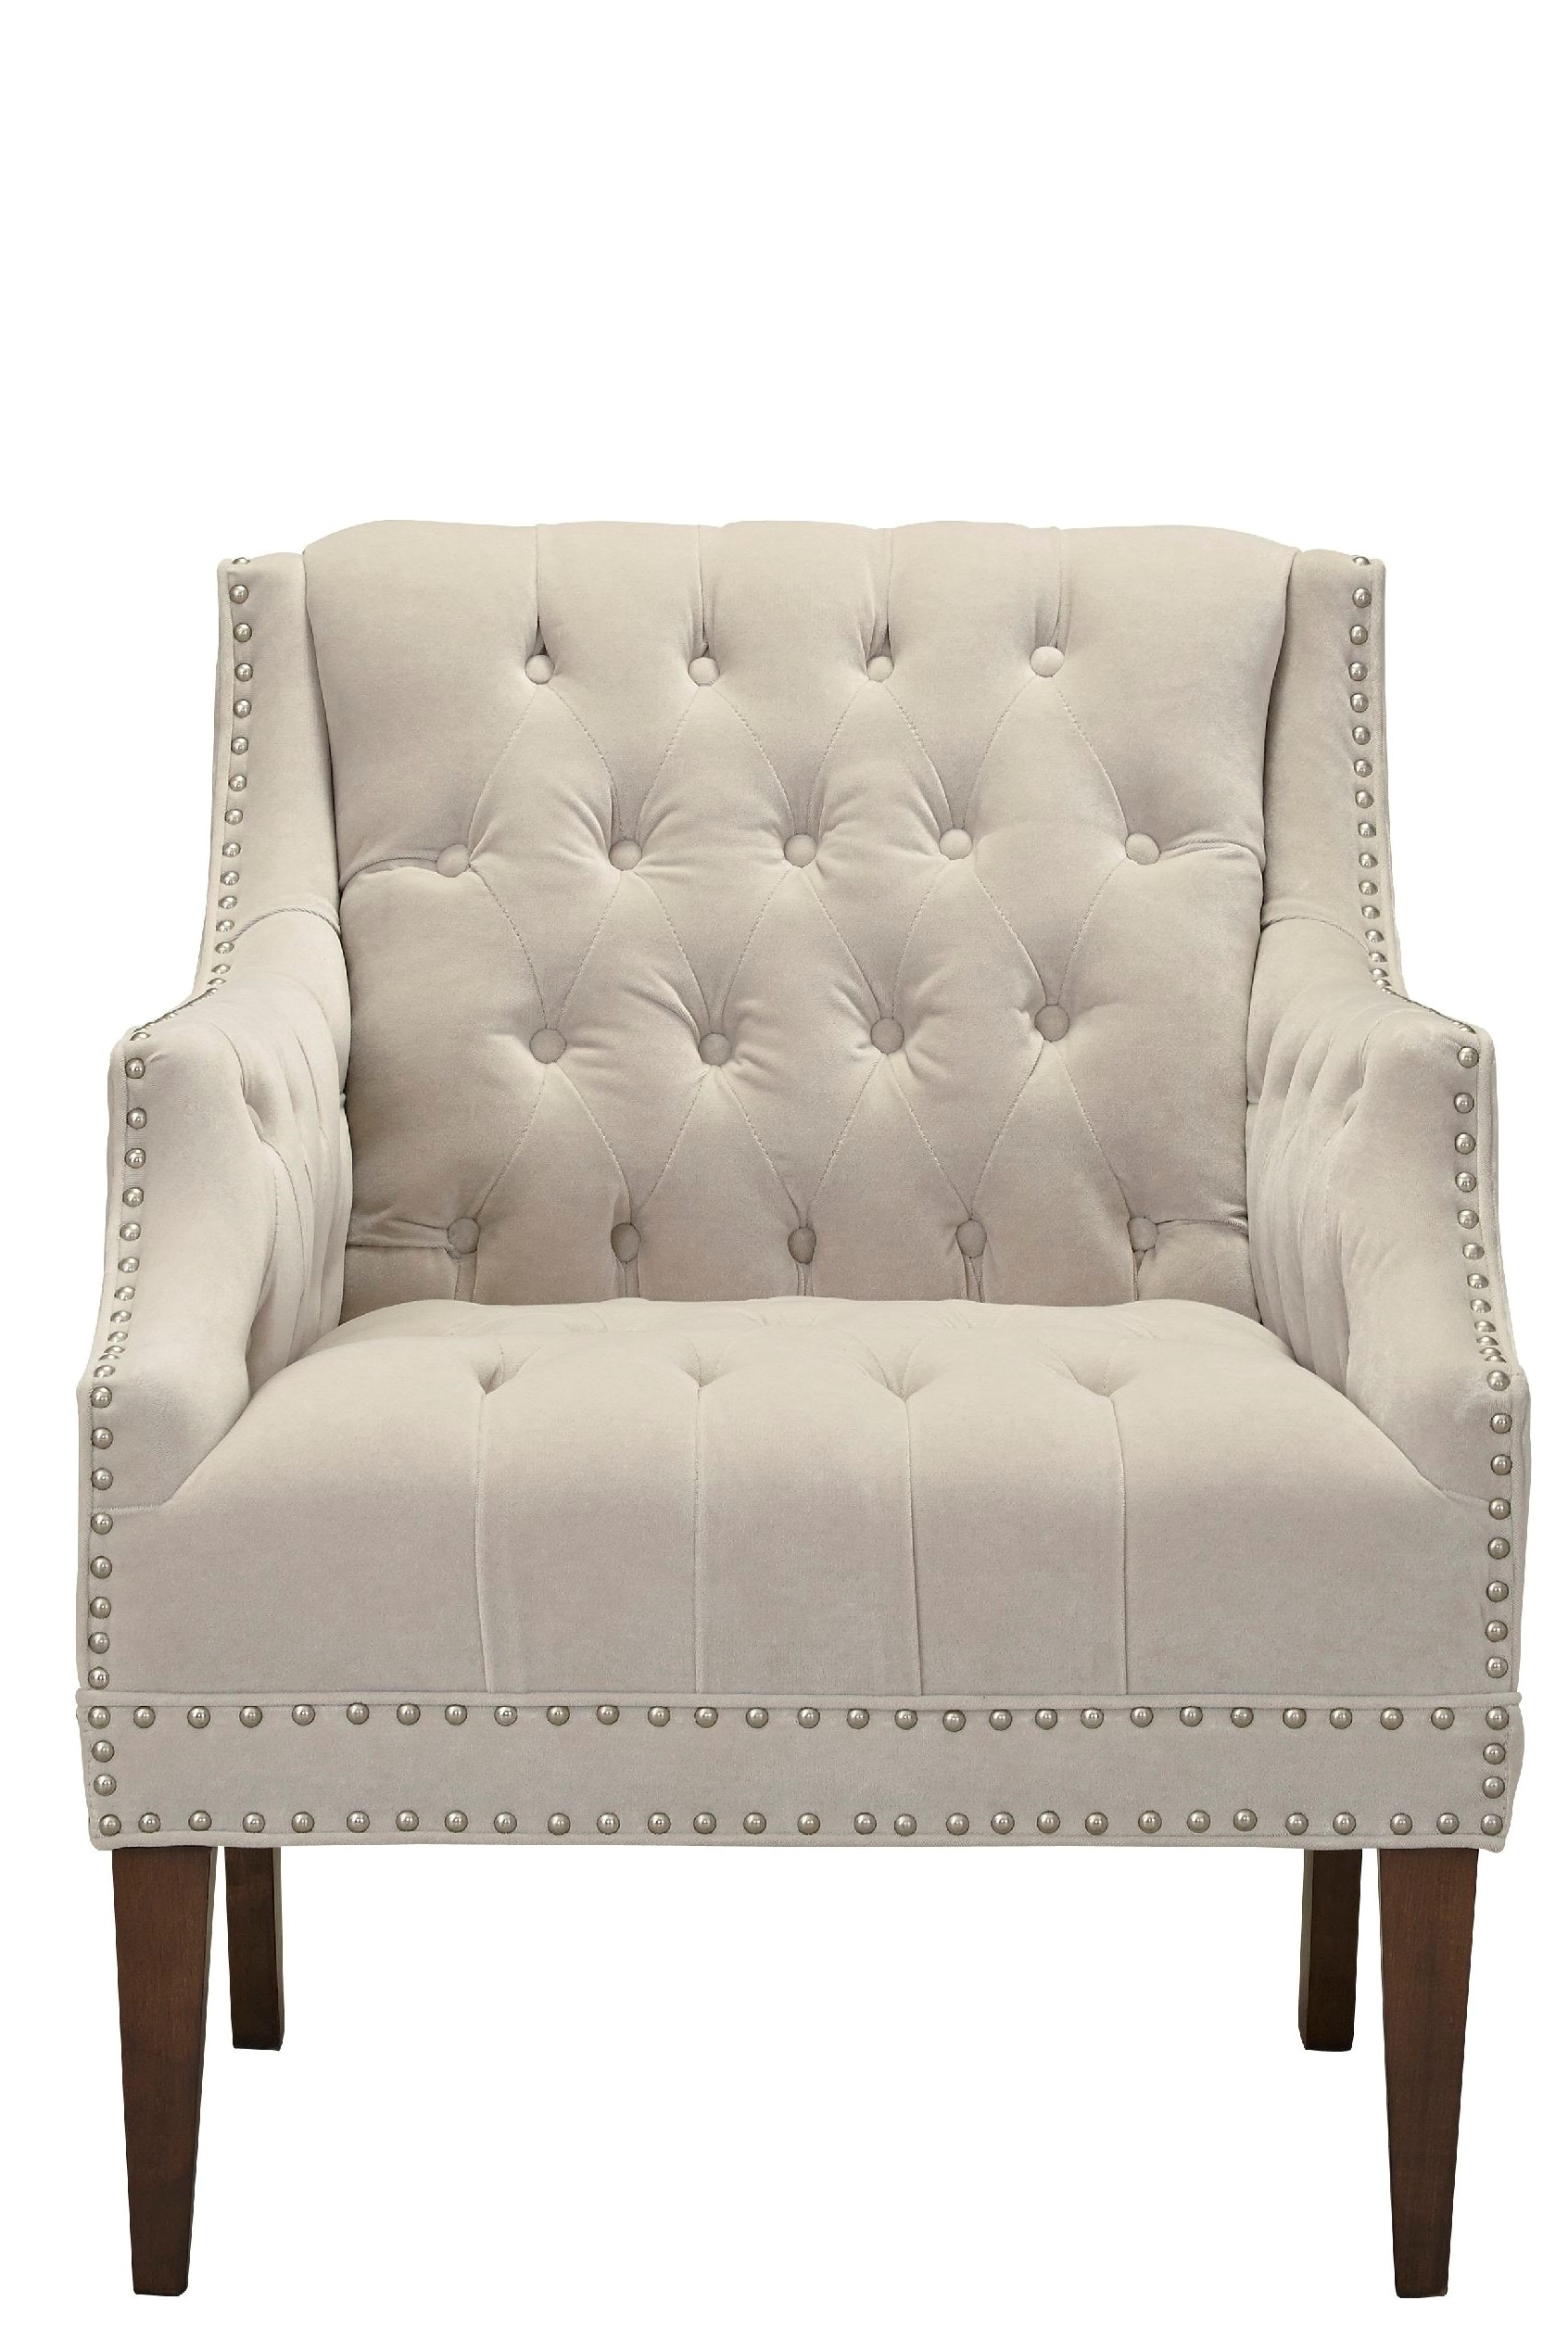 Southern Furniture Living Room Charlotte Chair Nails